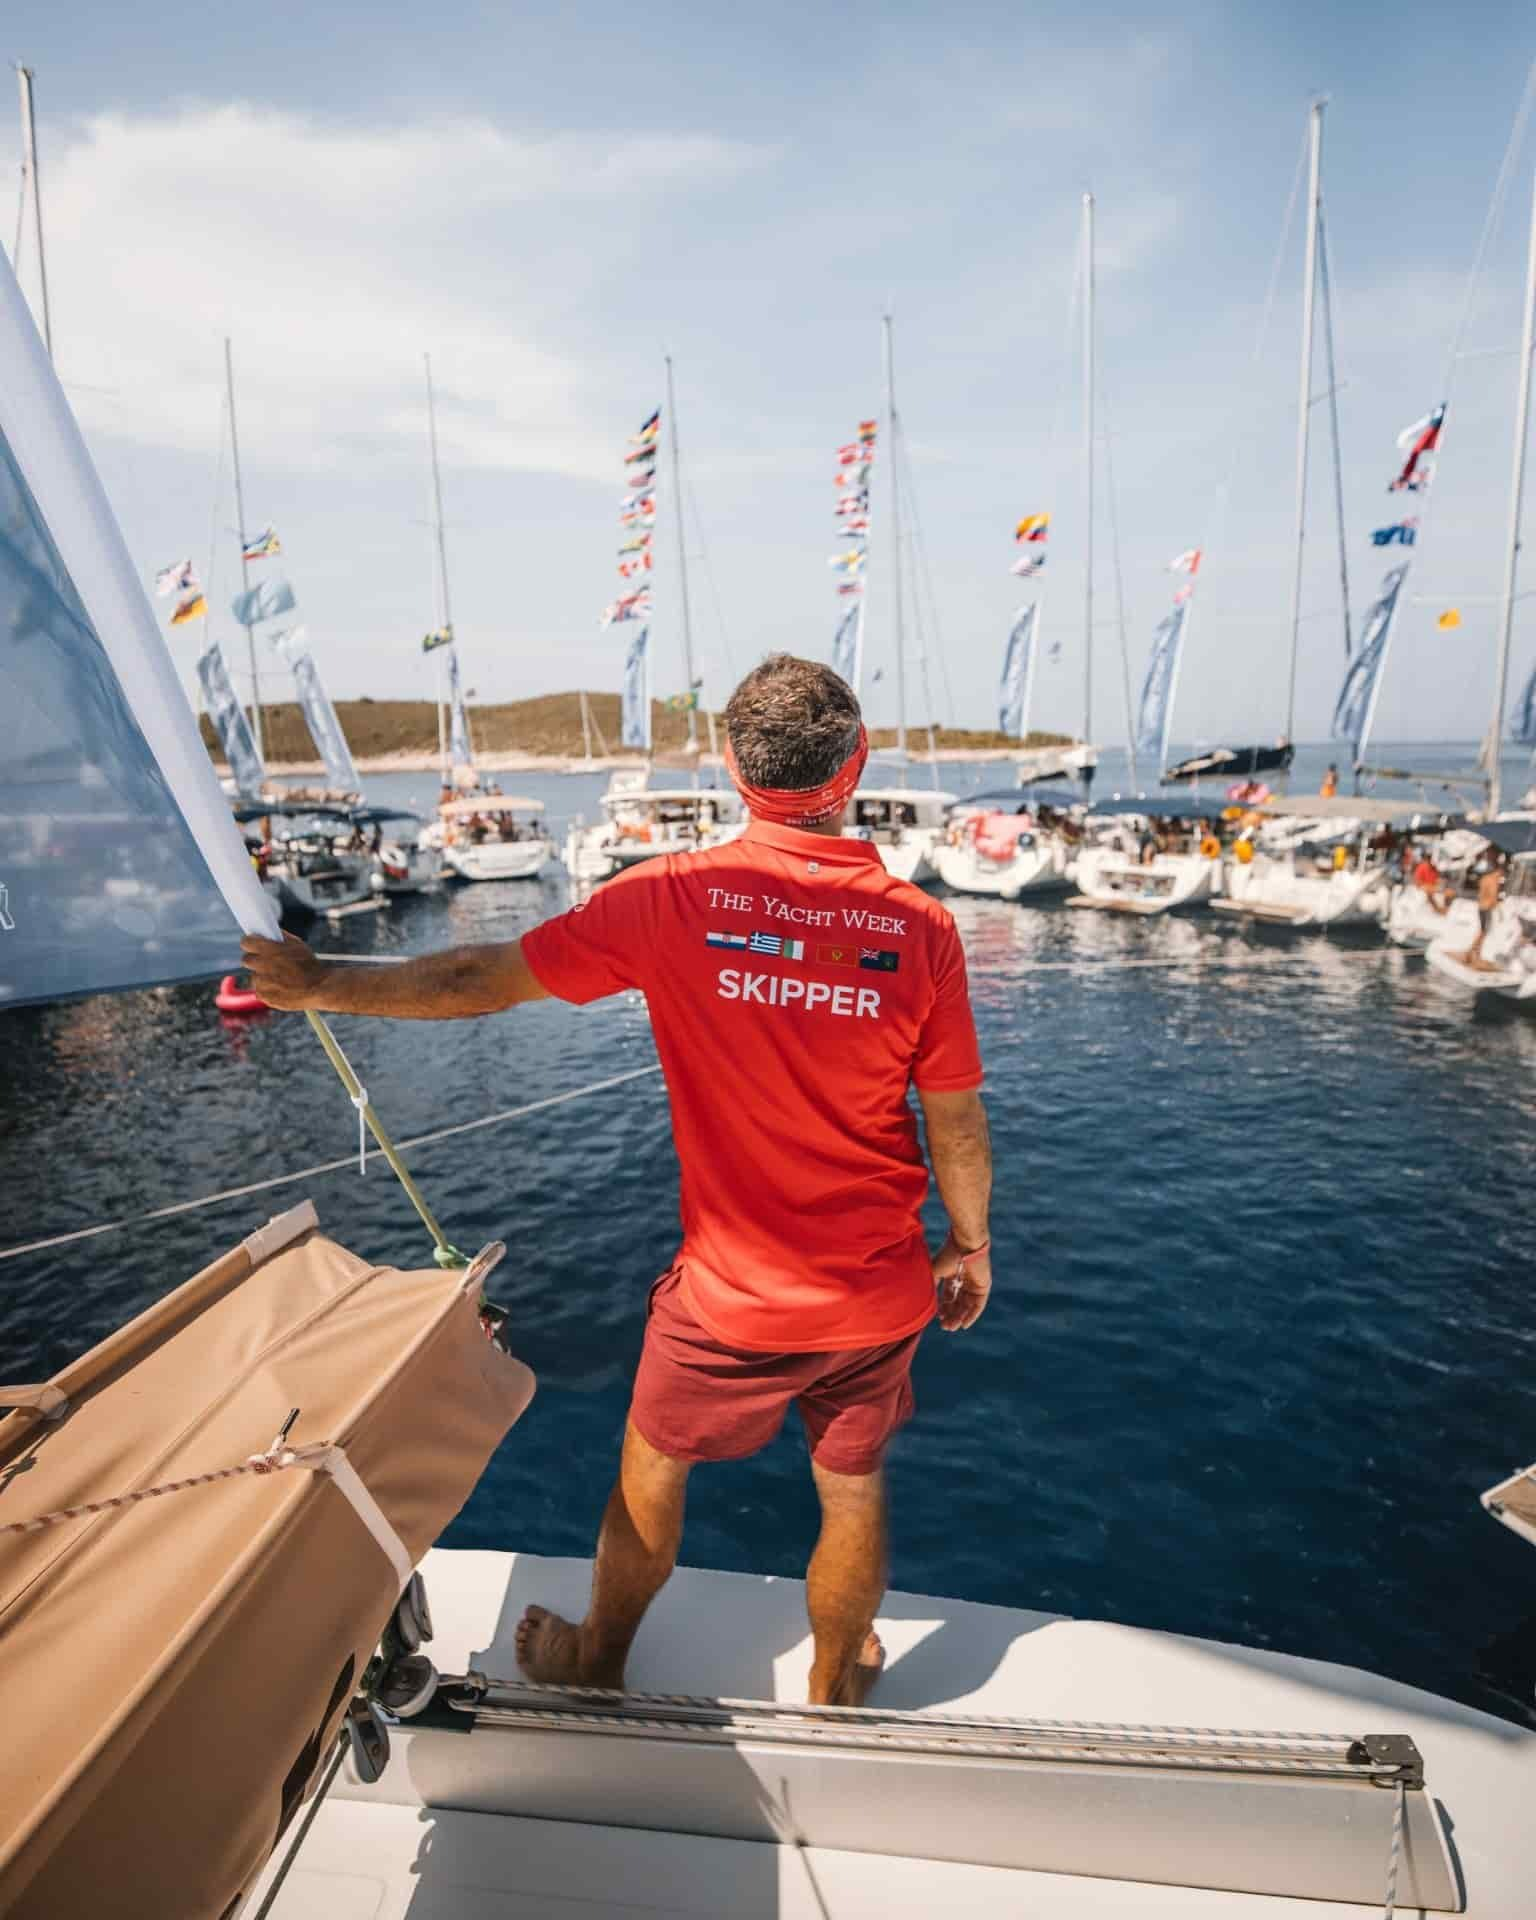 The Yacht Week's skipper overlooking the yachts